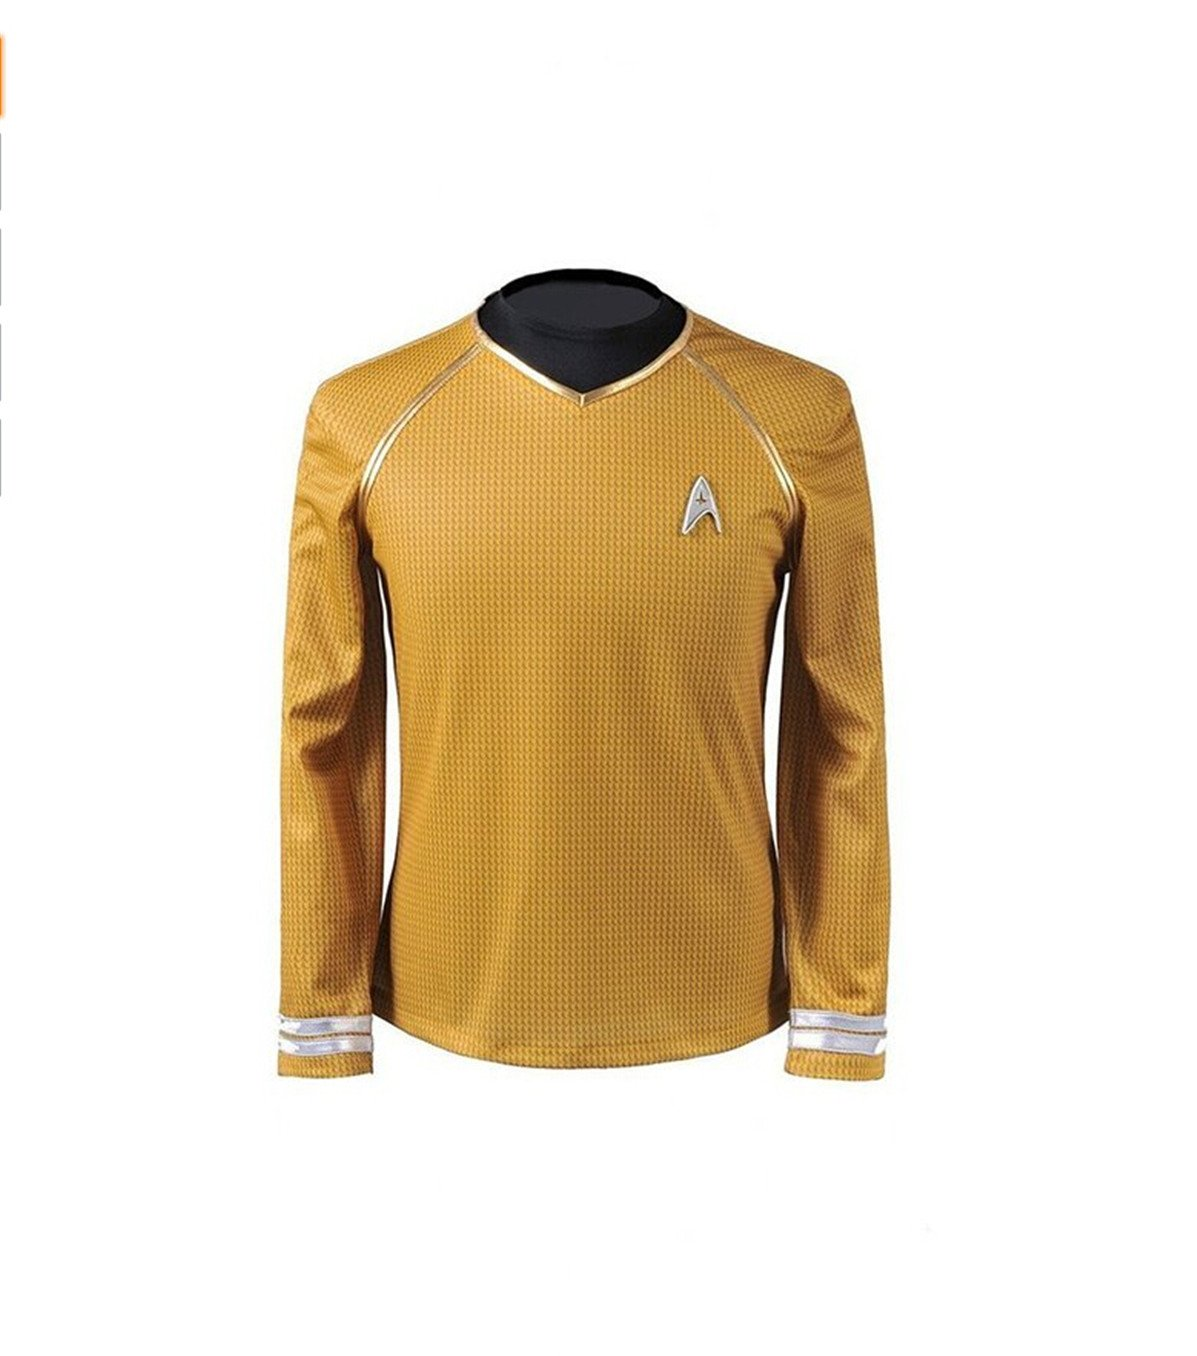 Cosparts Star Trek Into Darkness Yellow Captain Man's Cosplay T-shrit (US Size M) by Cosparts